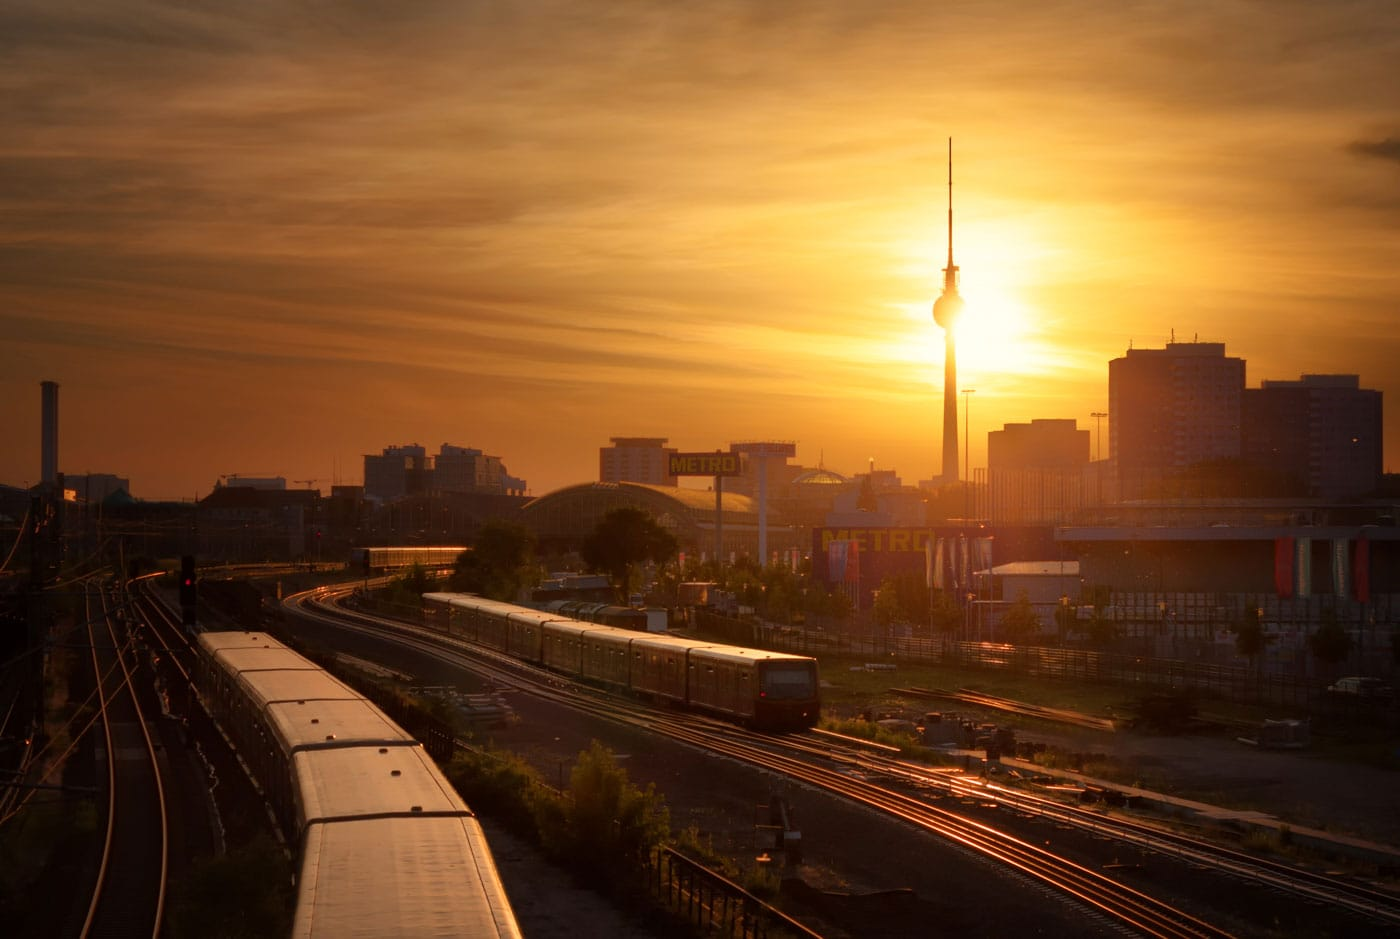 S-Bahn metro trains in front of the Berlin Skyline at sunset